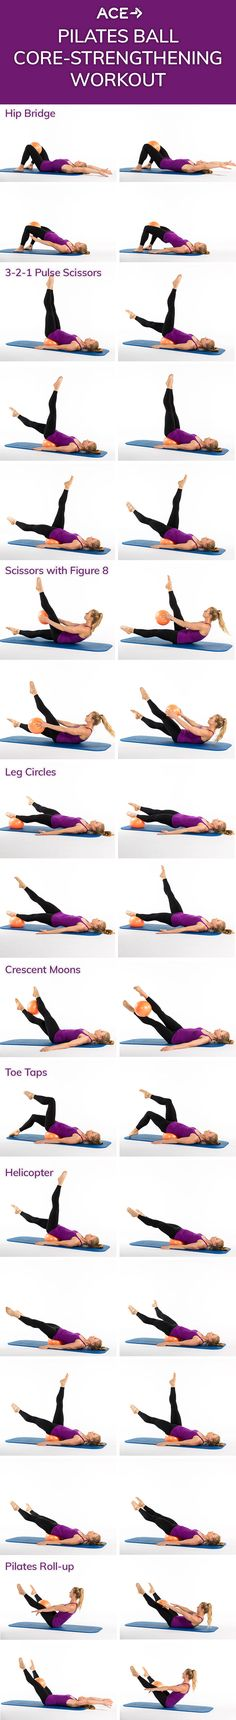 The Pilates Ball Core-Strengthening Workout